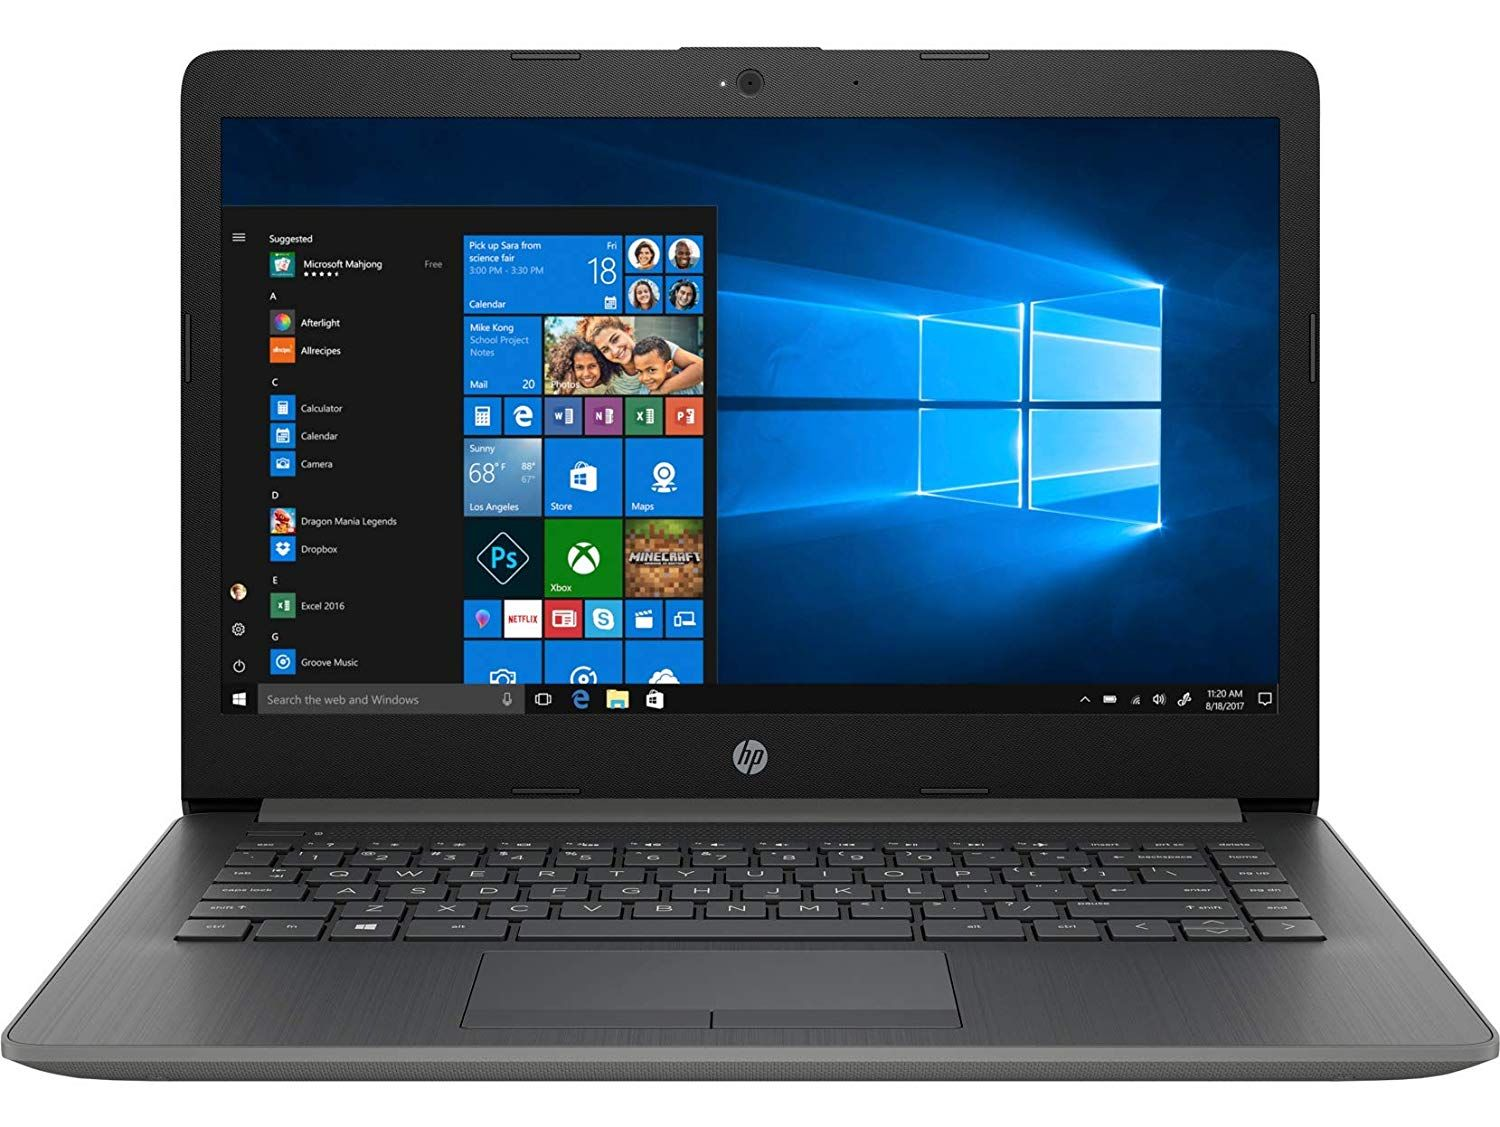 Laptop from HP The Laptop is equipped with a 4 GB RAM to